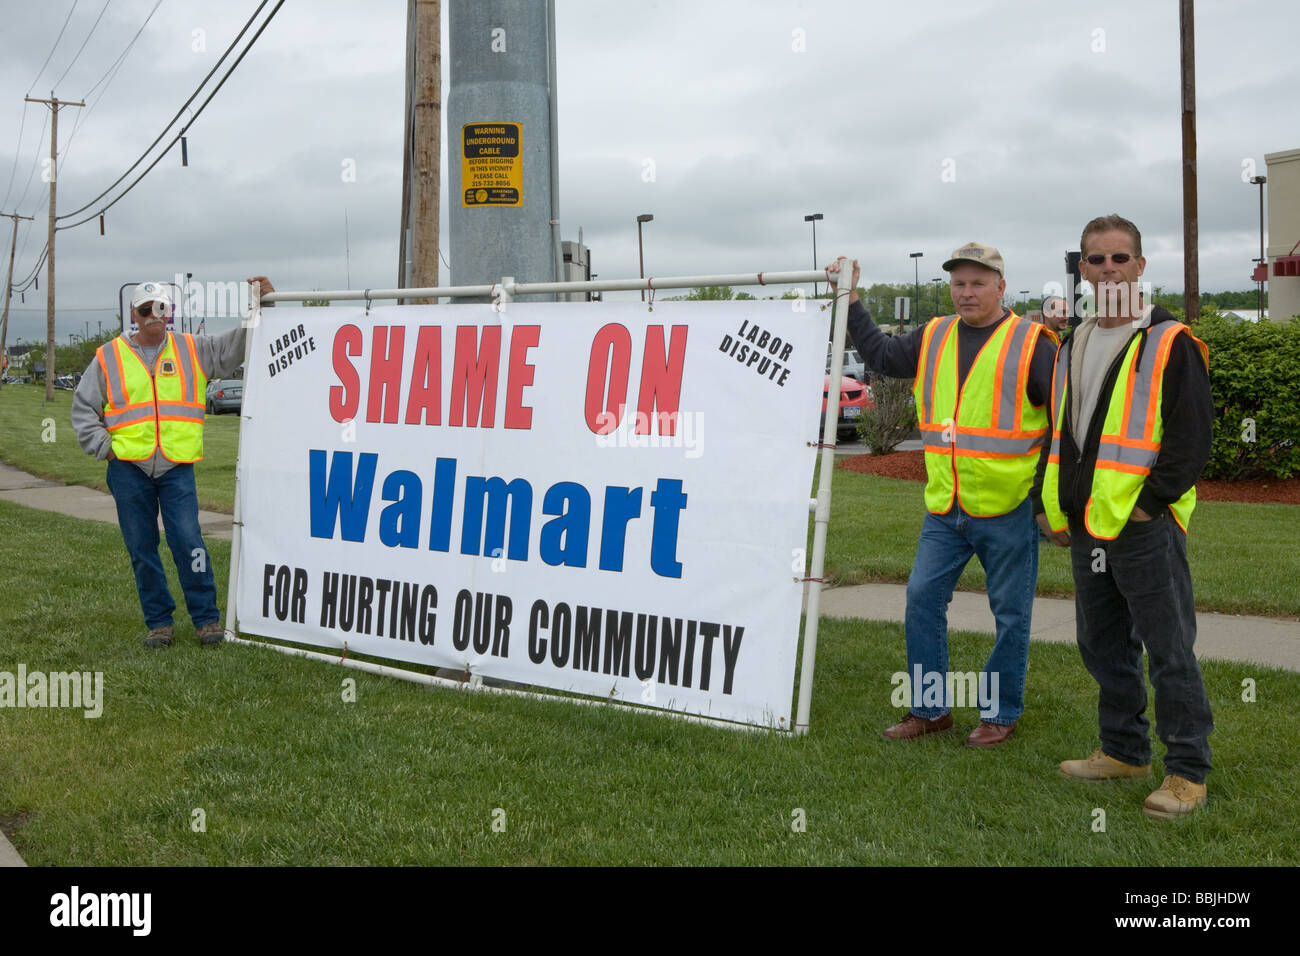 Union carpenters labor dispute protesting Walmart hiring scab labor to build addtion in Amsterdam New York State - Stock Image